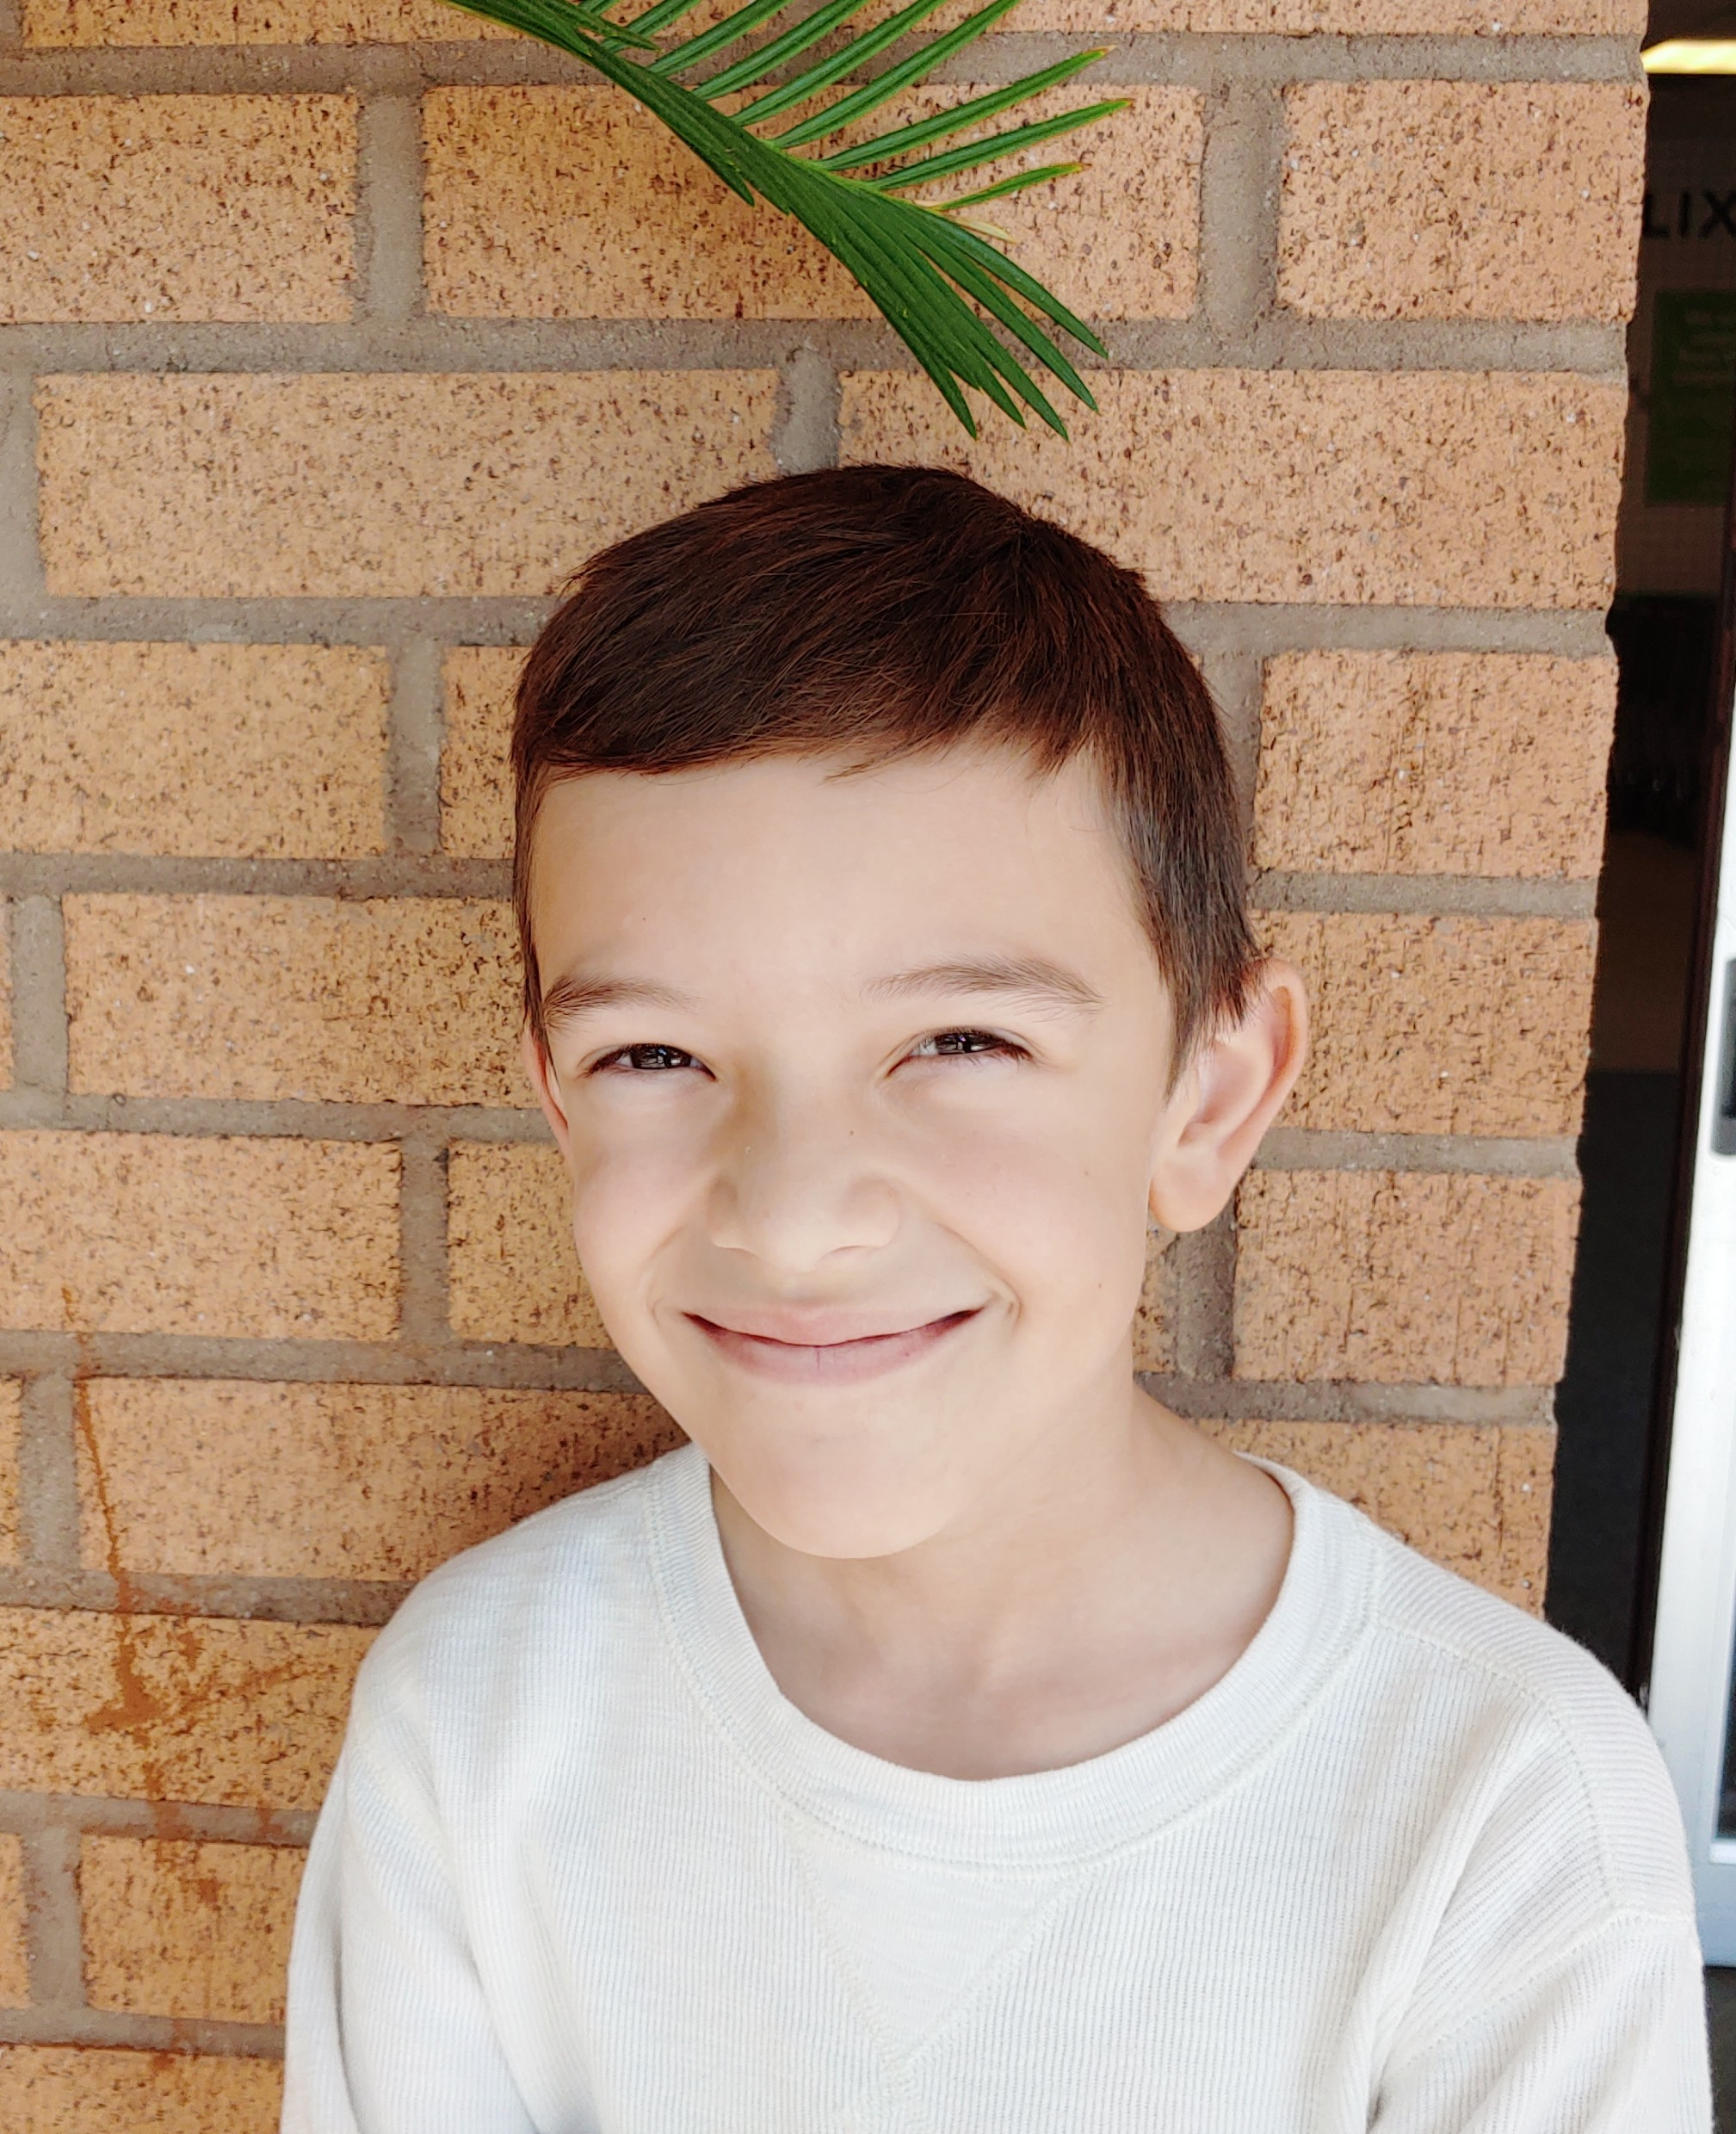 The thing that I want the most is a HyperX gaming keyboard because the keys on the keyboard I have right now are hard to press down when gaming.  Mason, age 9  Daniel Island